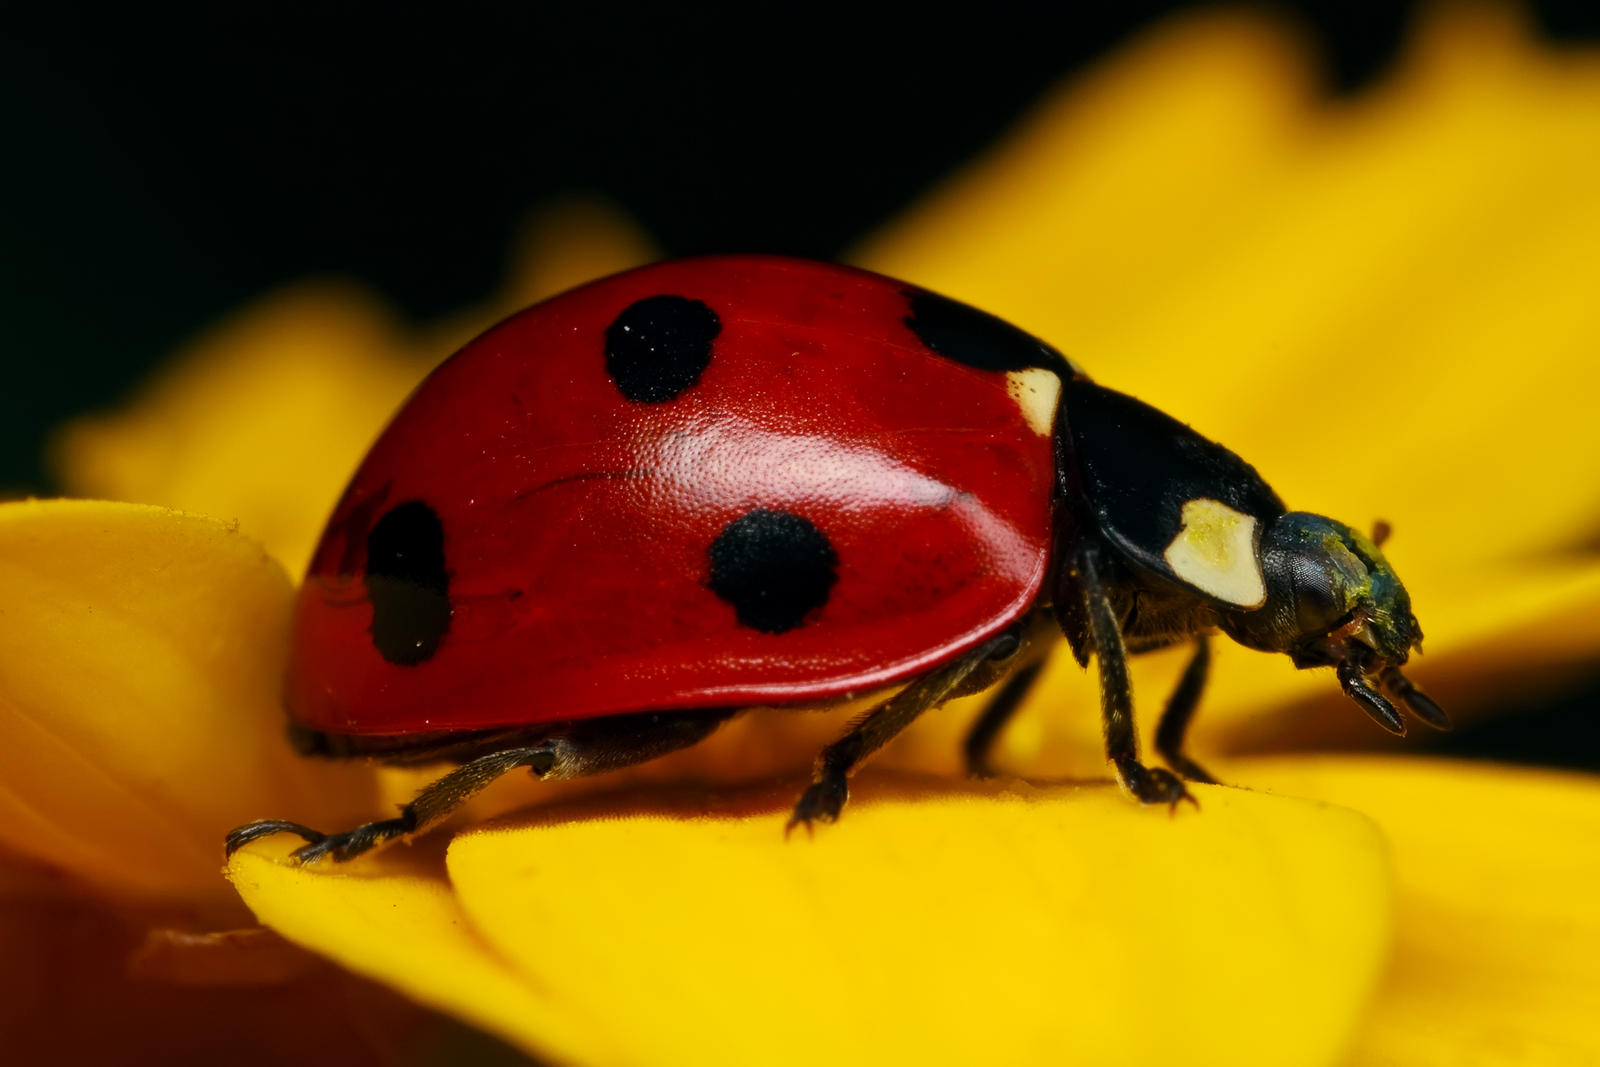 Ladybug on Yellow by dalantech